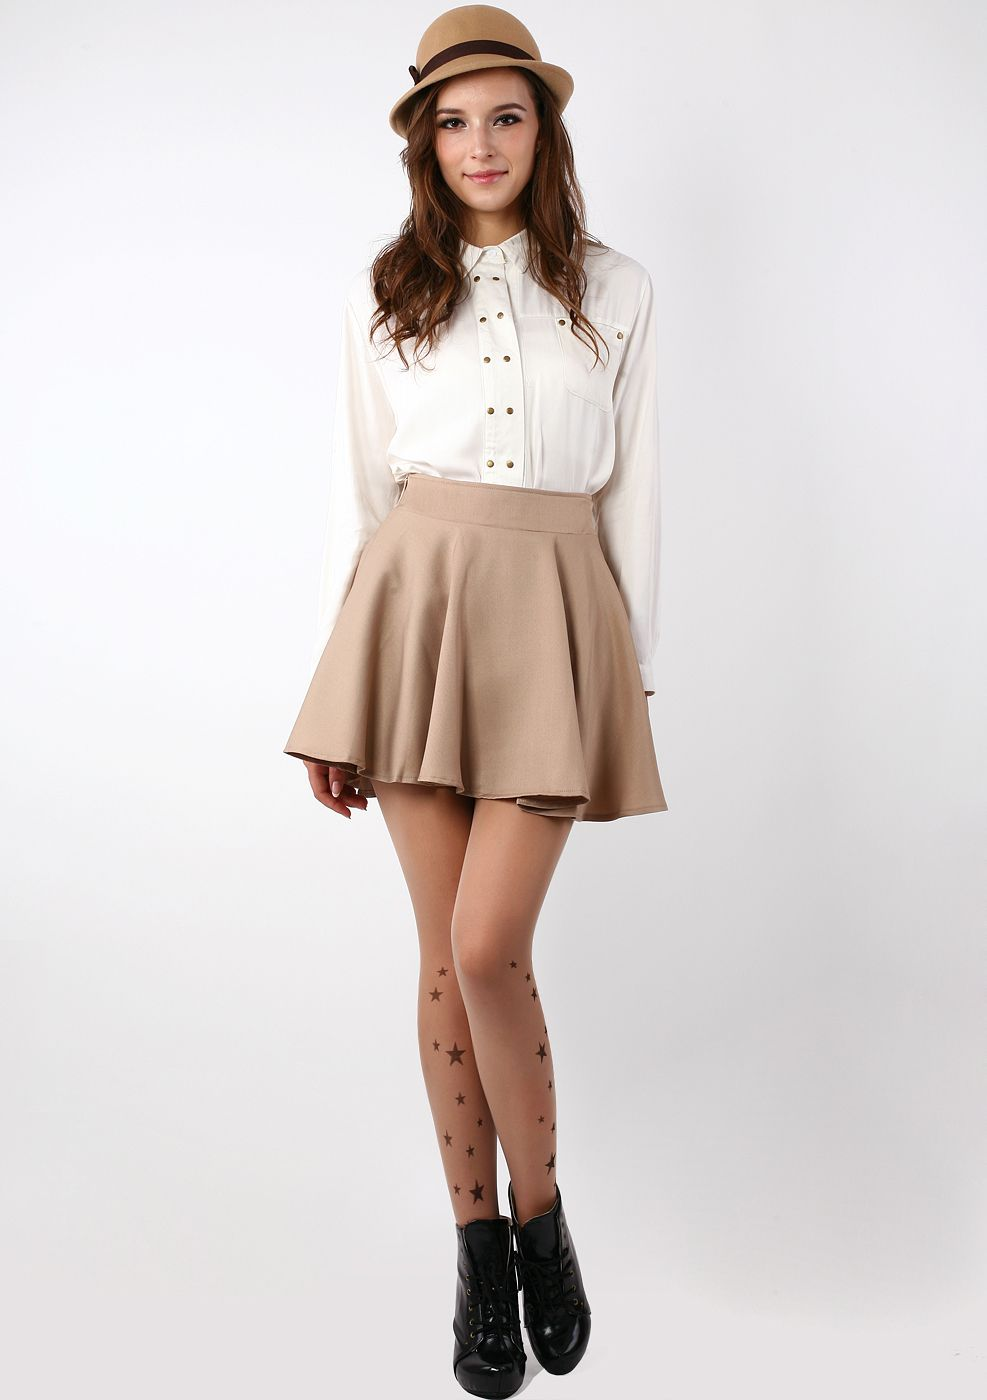 Khaki Skater Skirt - Bottoms - Retro Indie and Unique Fashion | Fall Fashion CO-OPhx ...